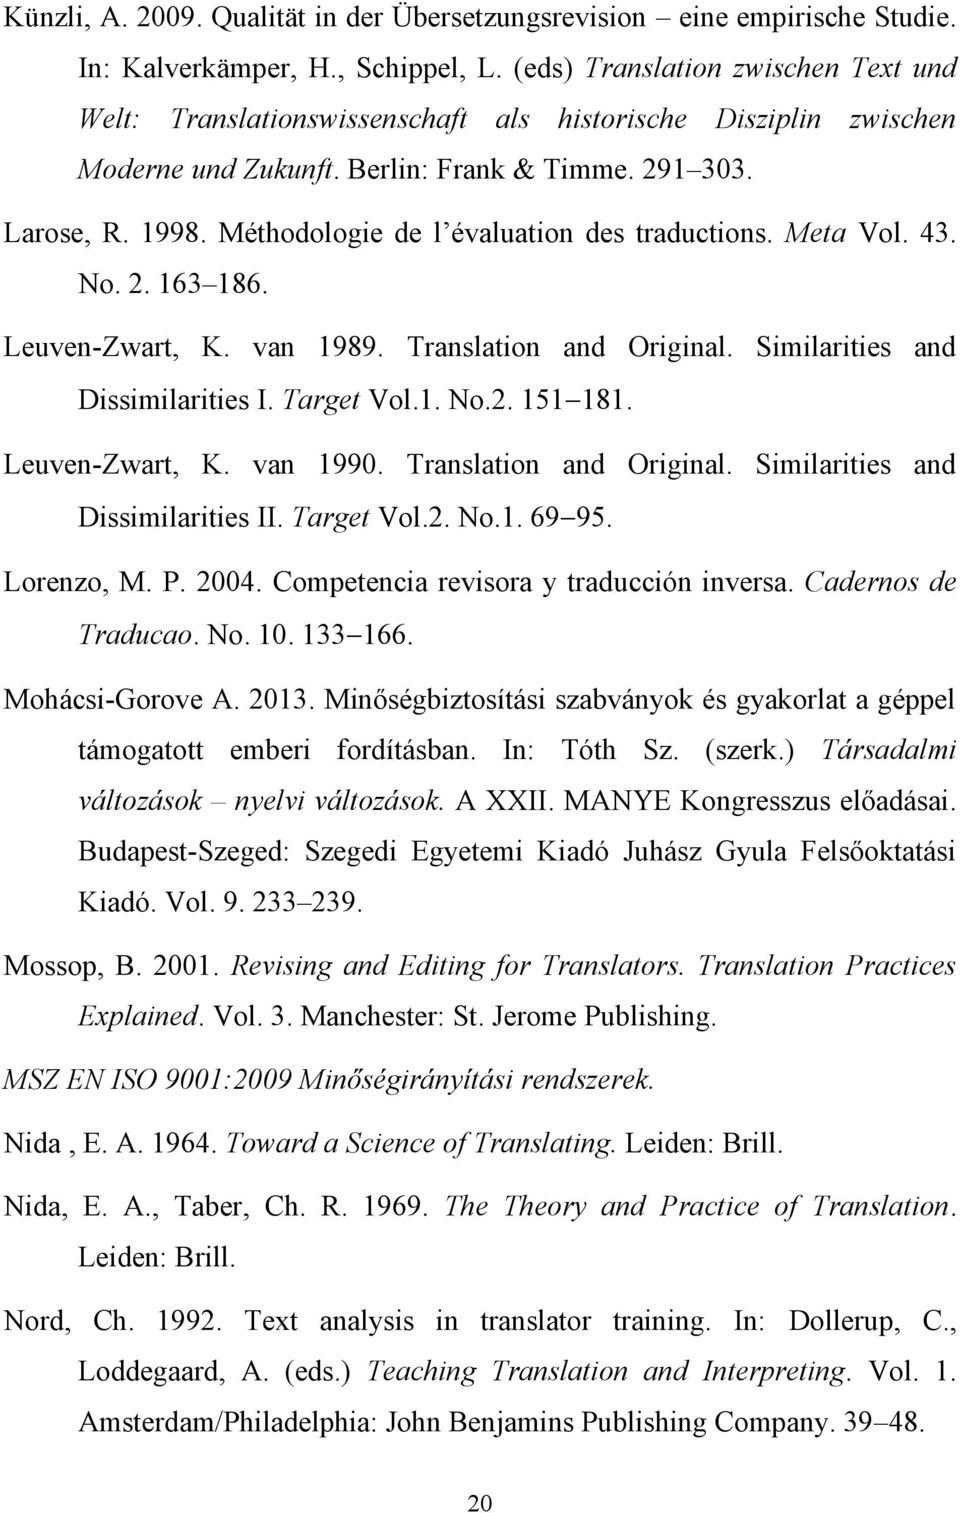 Méthodologie de l évaluation des traductions. Meta Vol. 43. No. 2. 163 186. Leuven-Zwart, K. van 1989. Translation and Original. Similarities and Dissimilarities I. Target Vol.1. No.2. 151 181.